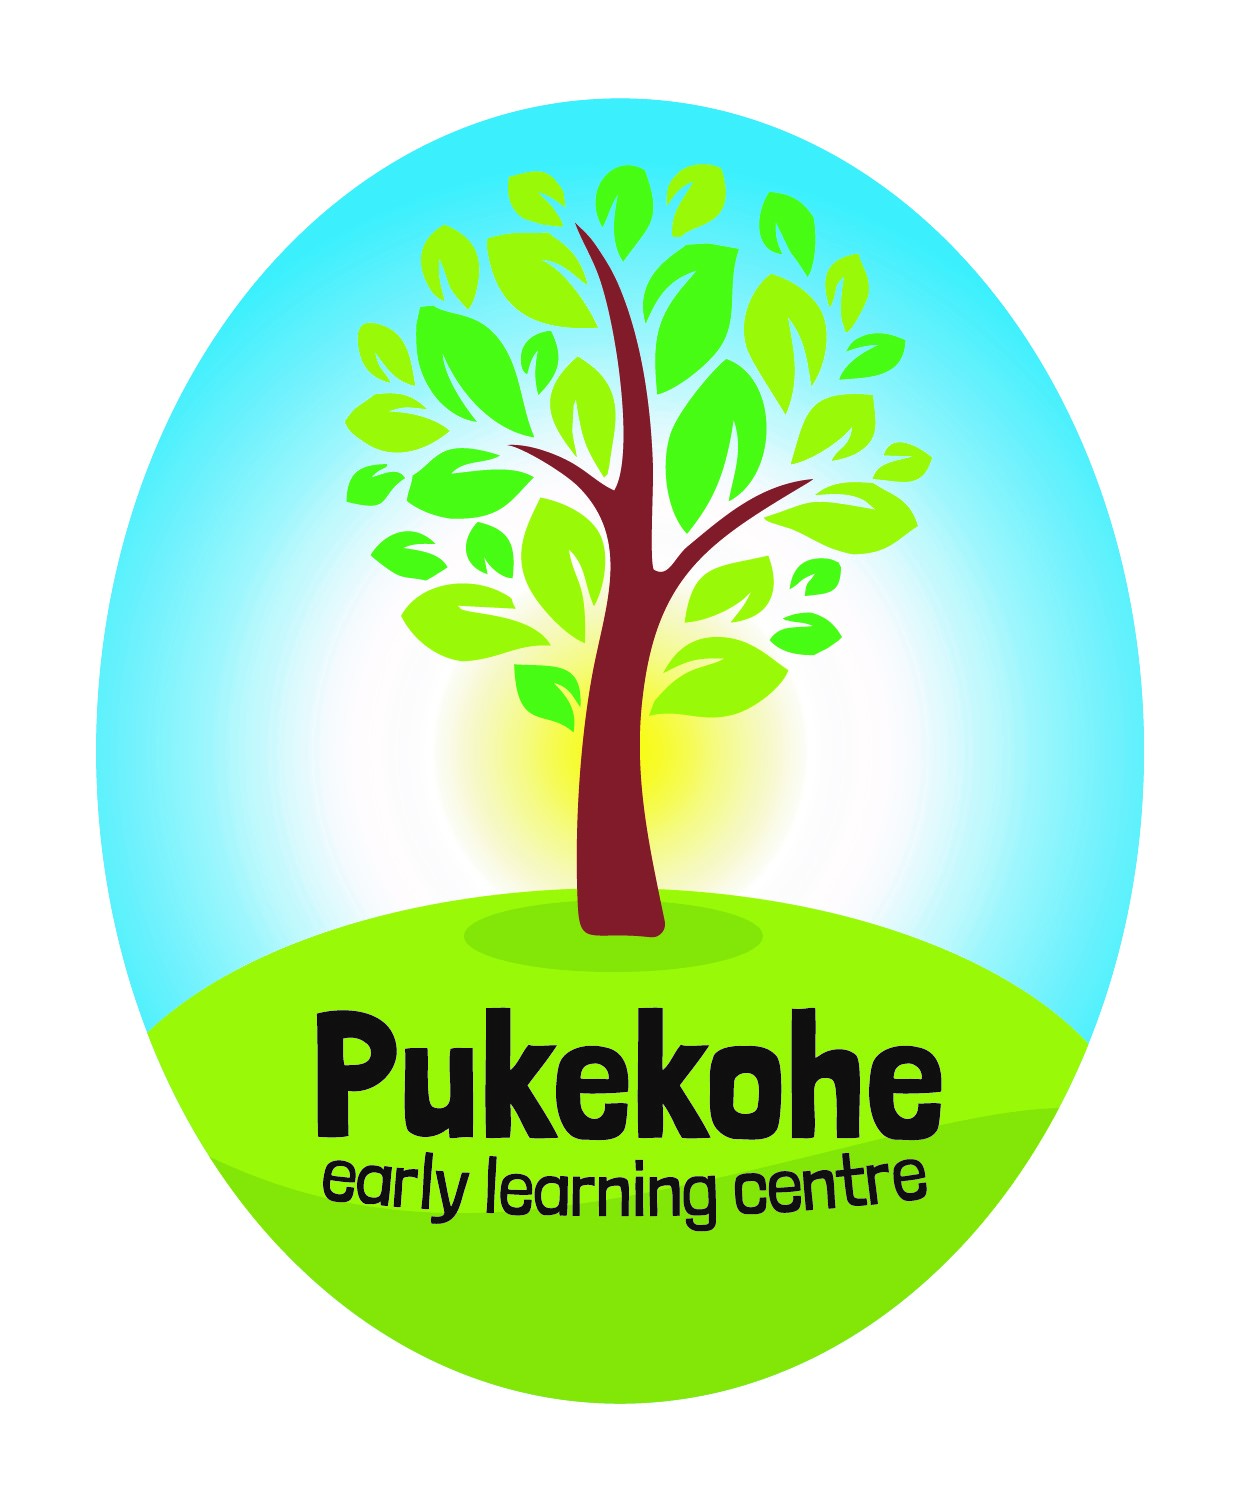 Pukekohe Early Learning Centre